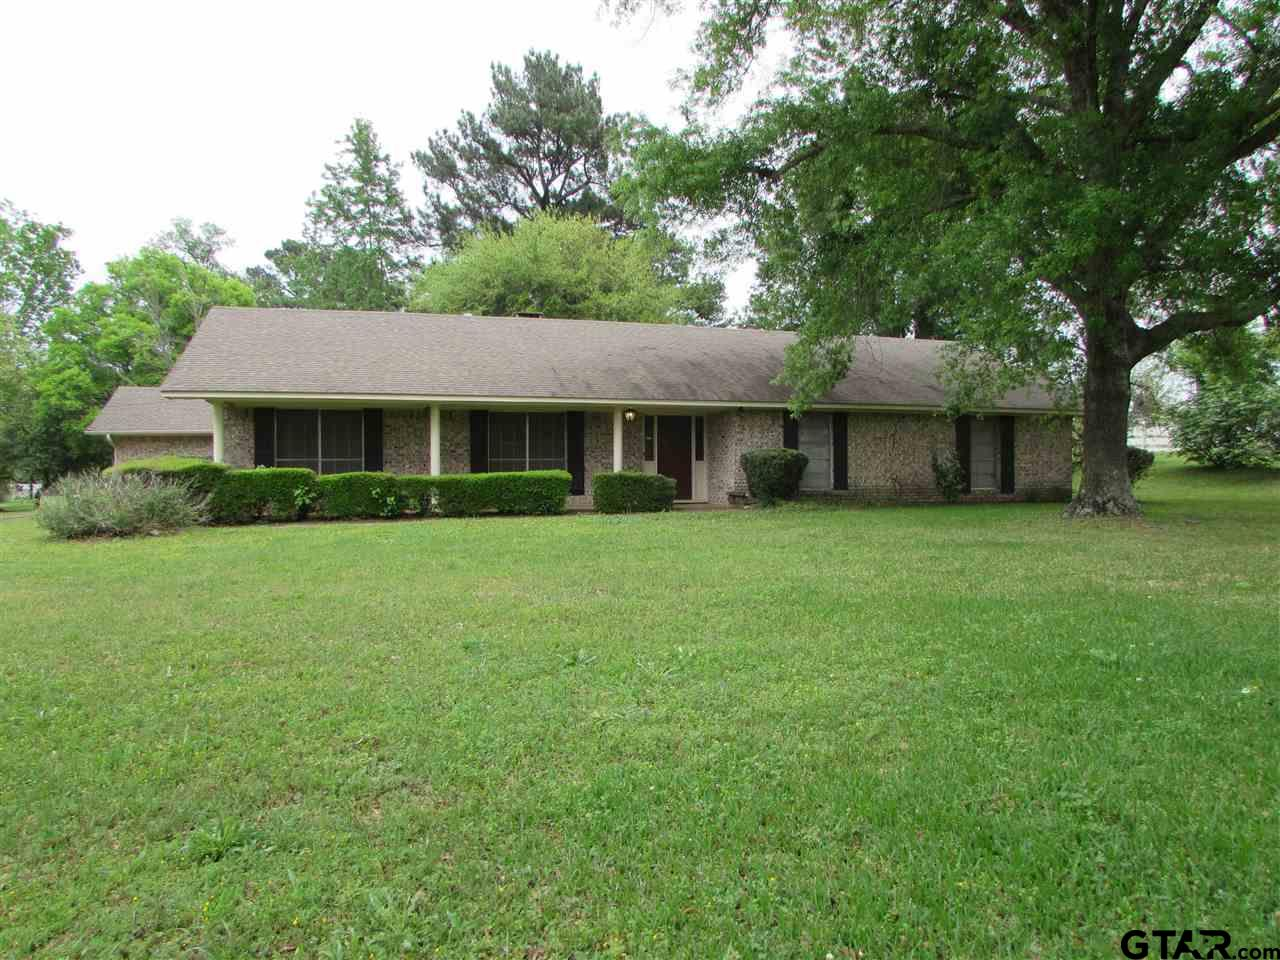 150 An County Road 146, Palestine, TX 75801